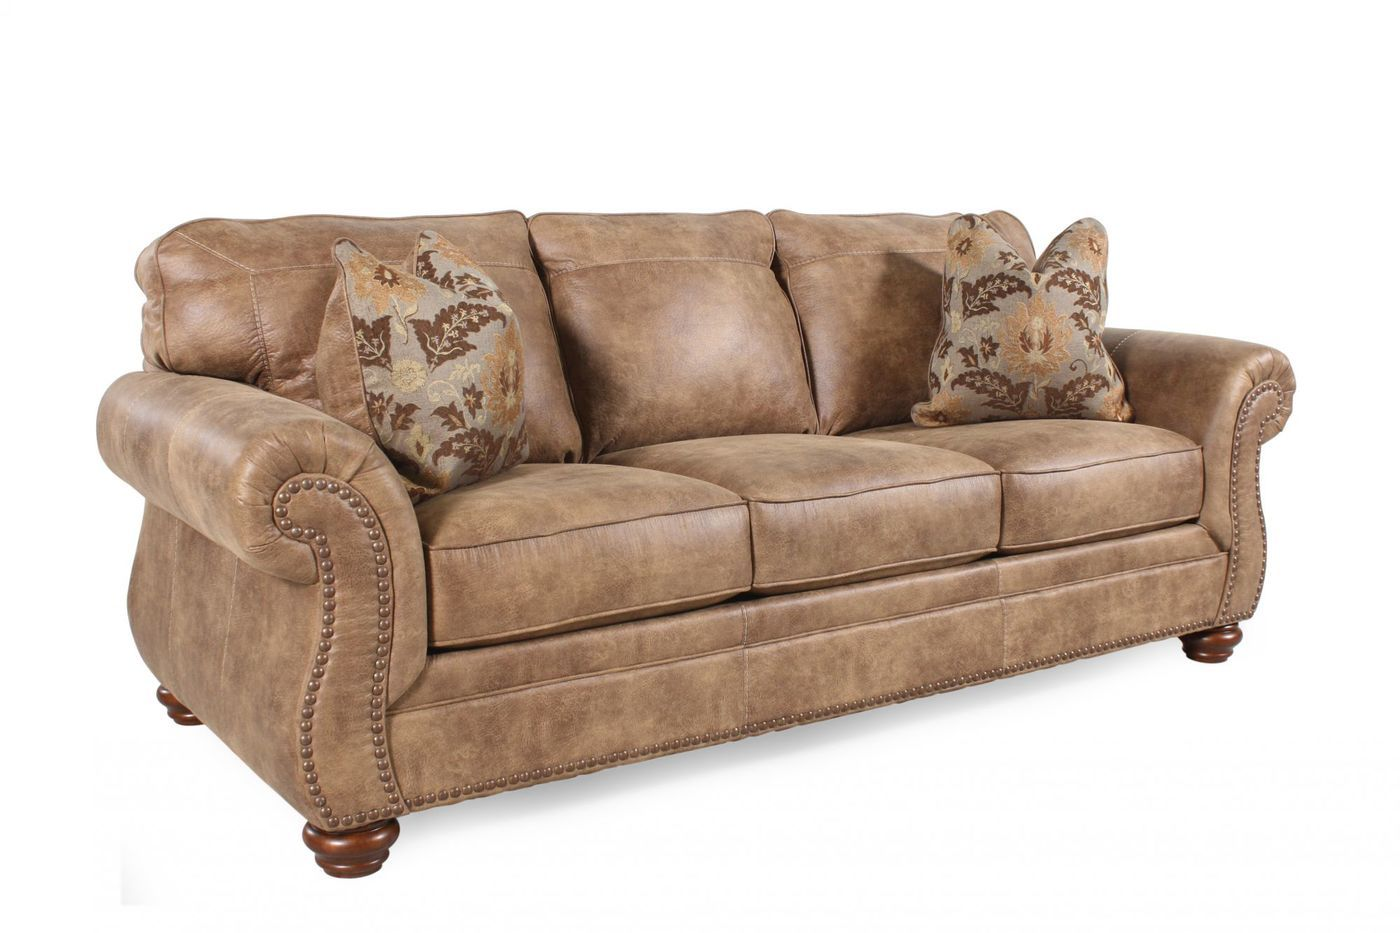 Leather Sofas Or Fabric Sofas The Duel Of Eternity Traditional Sofa